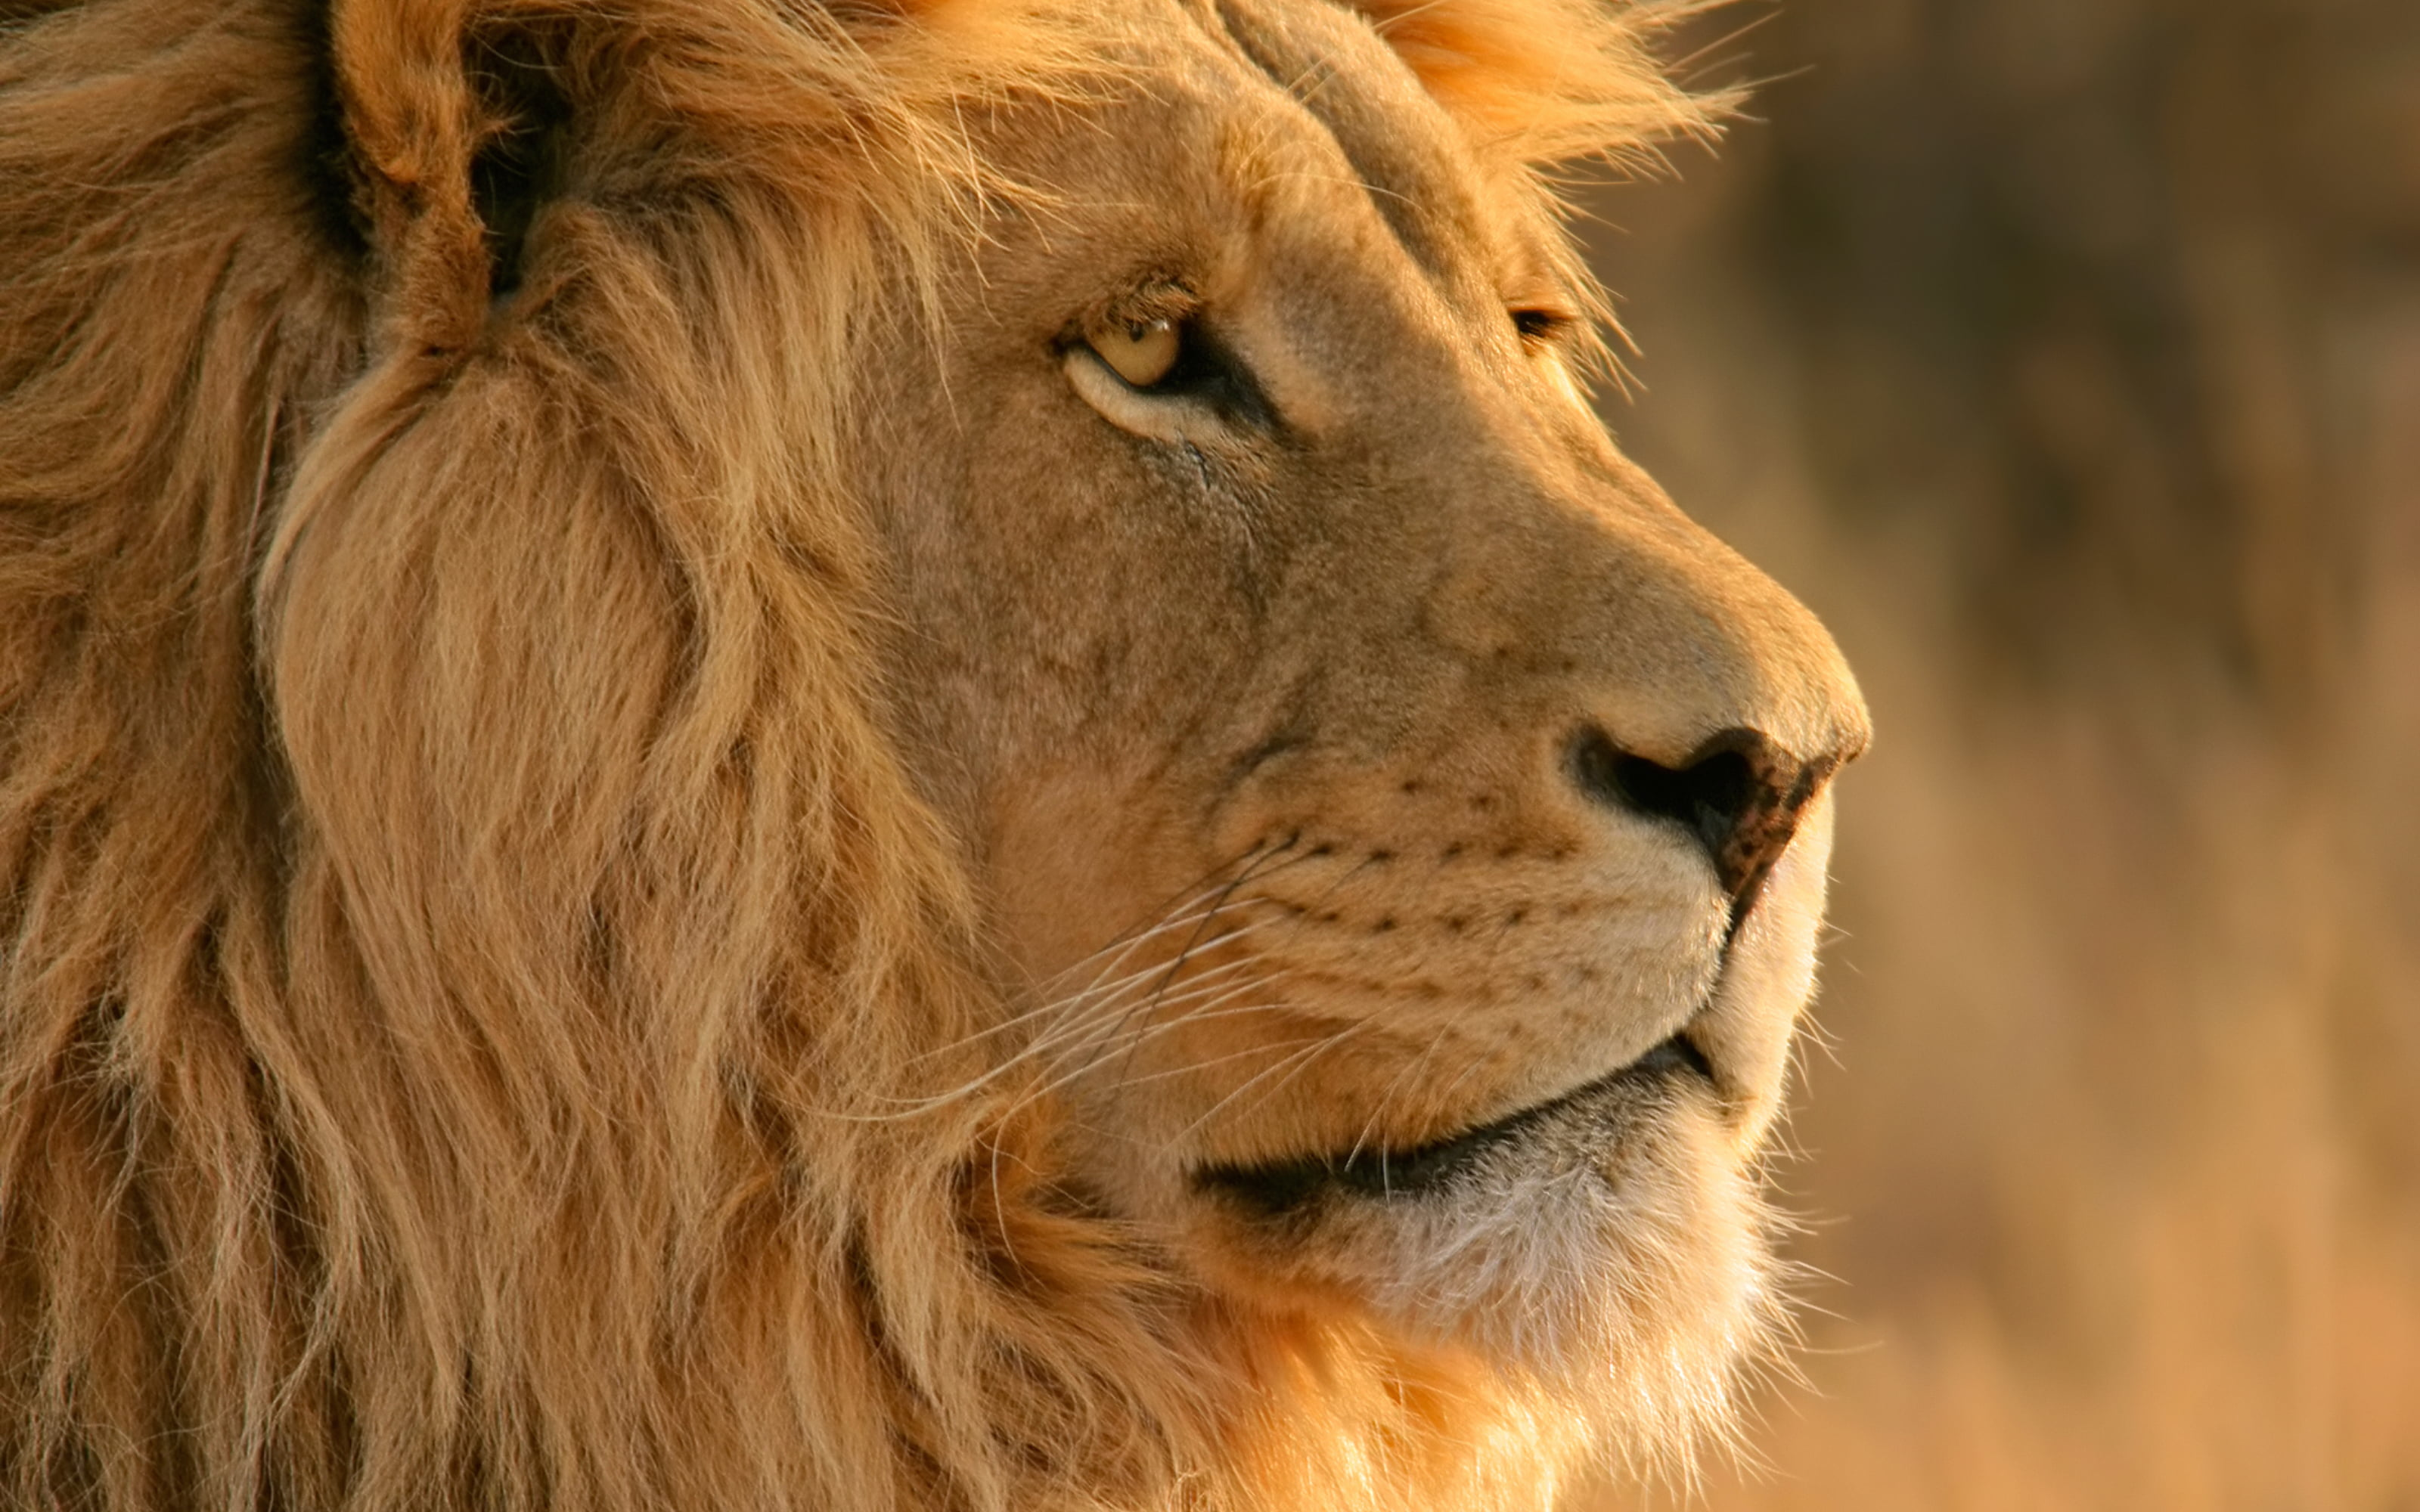 Close up photo of adult lion HD wallpaper | Wallpaper Flare